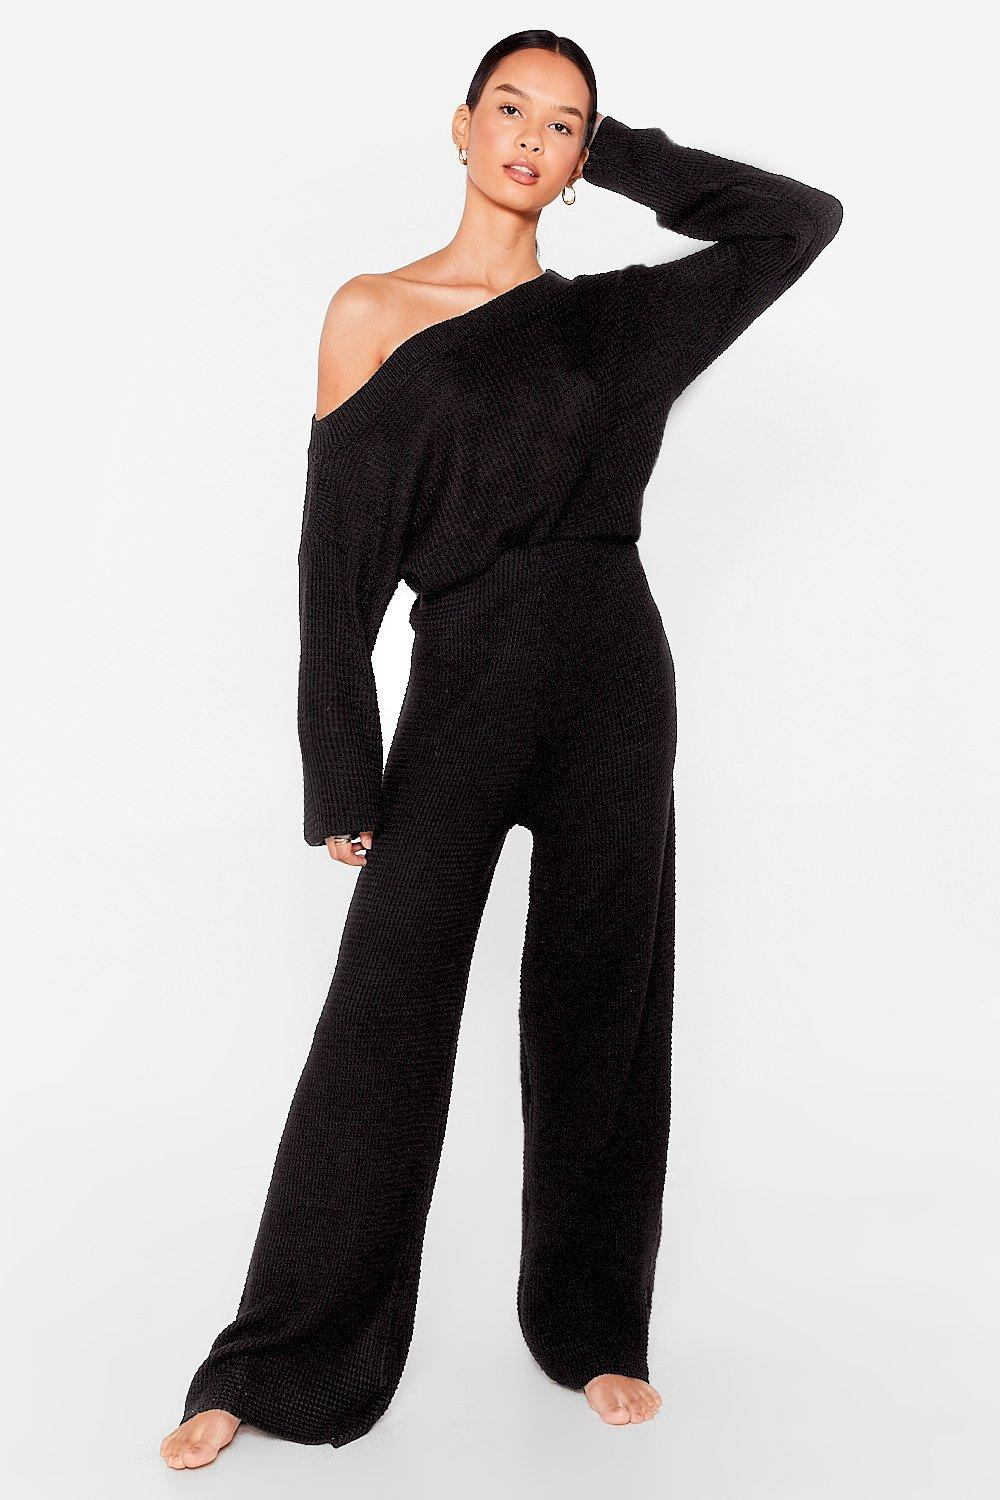 Image of Womens Waffle Top and Legging Set - Black